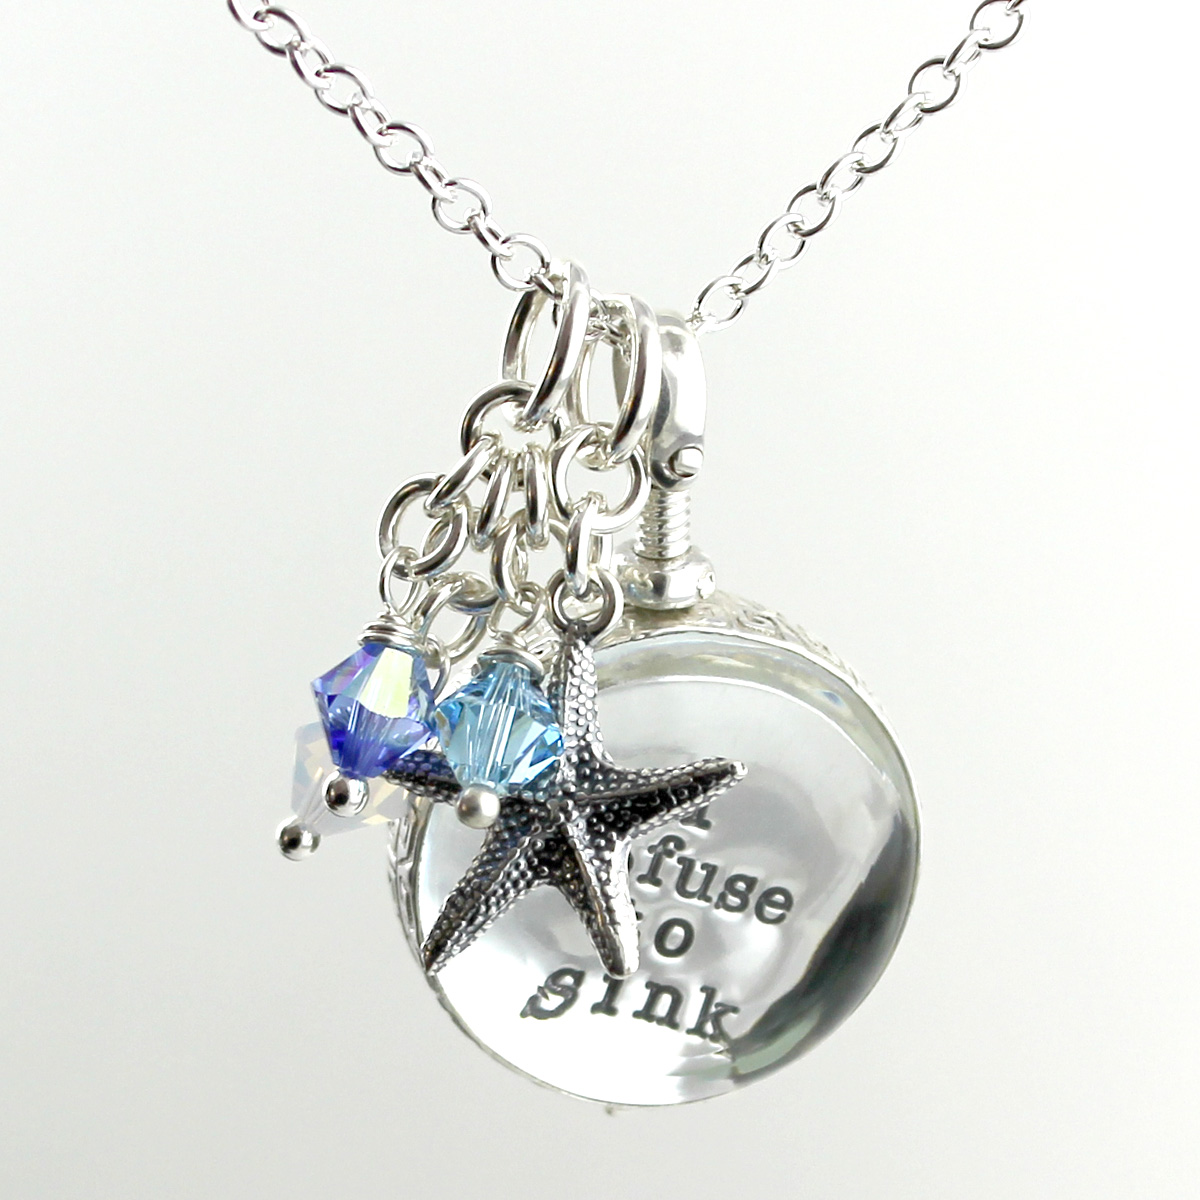 Simply Charming Glass Locket Personalized Necklace with Starfish Hanging